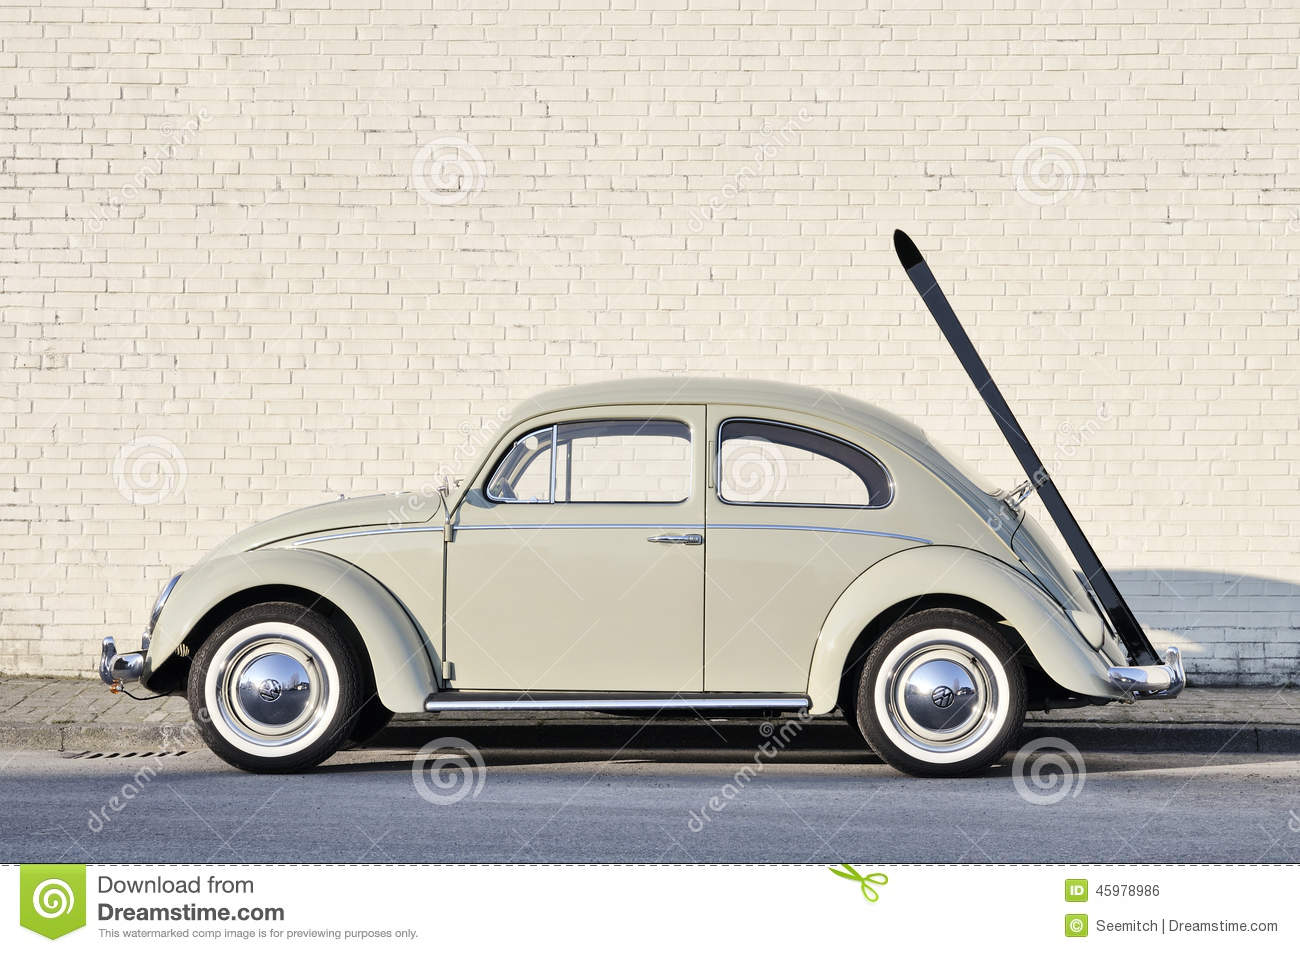 Volkswagen Beetle Vintage Car Parked In A Street Editorial Photo